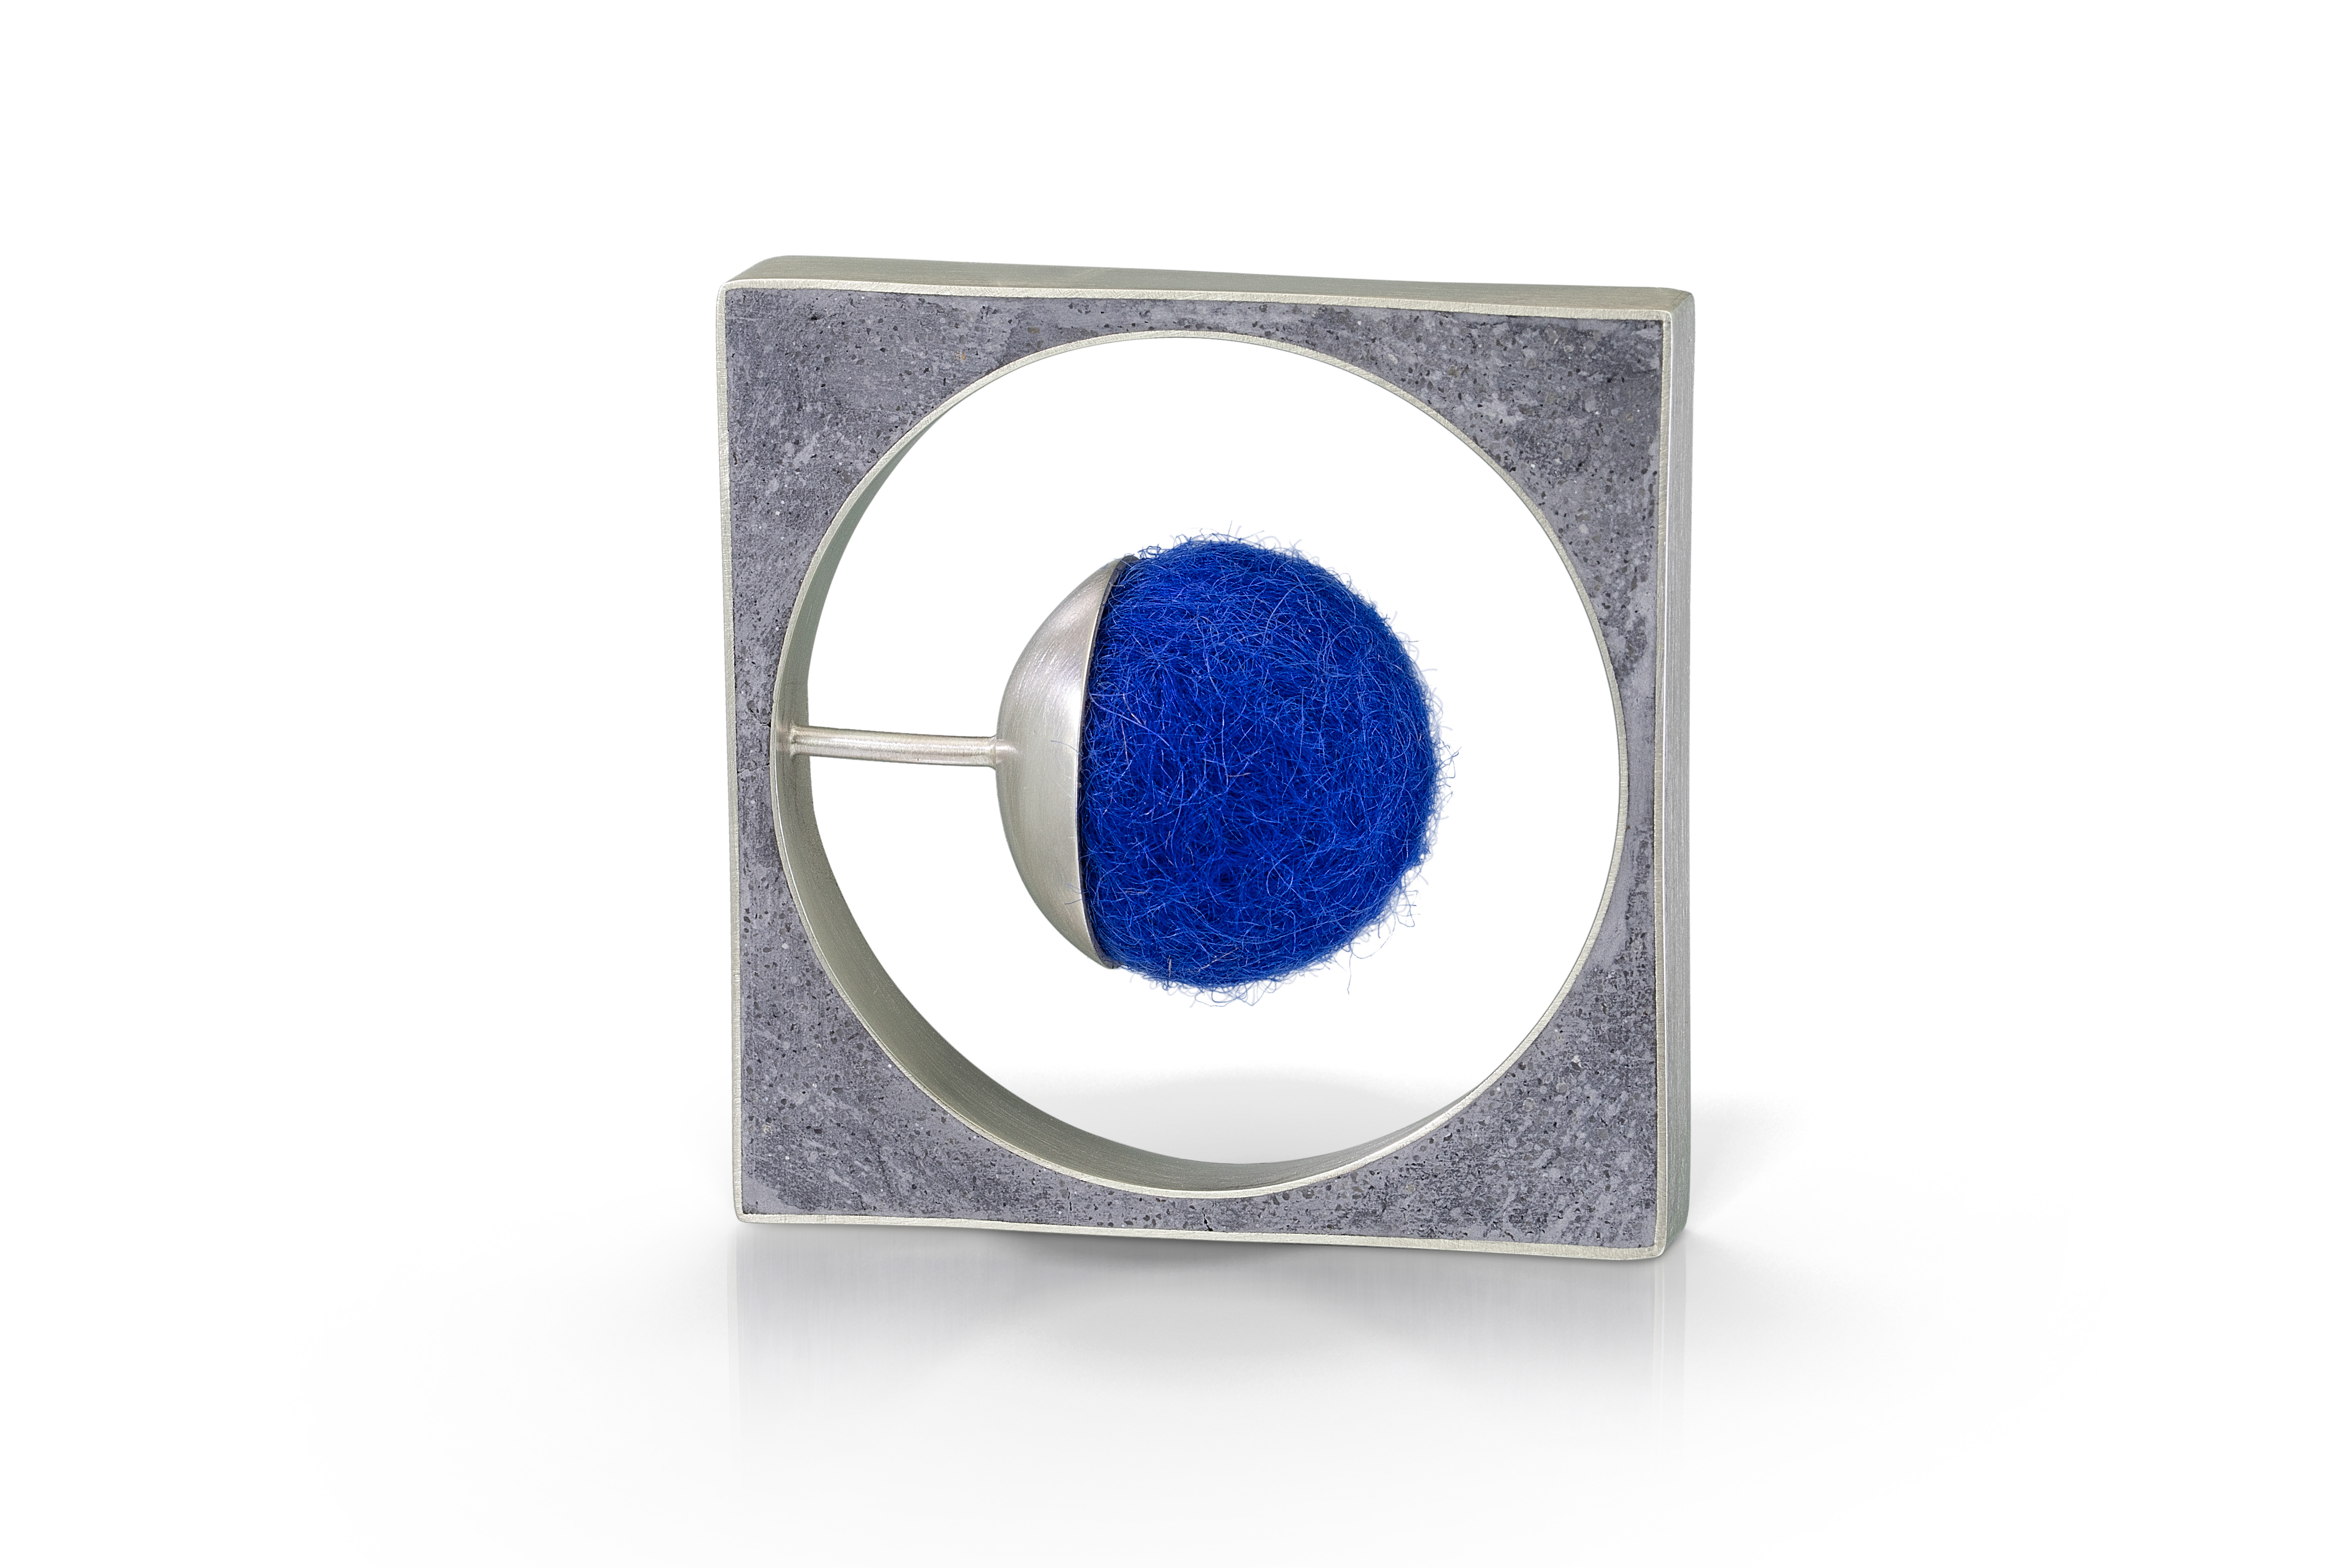 sterling silver pin with blue felt sphere